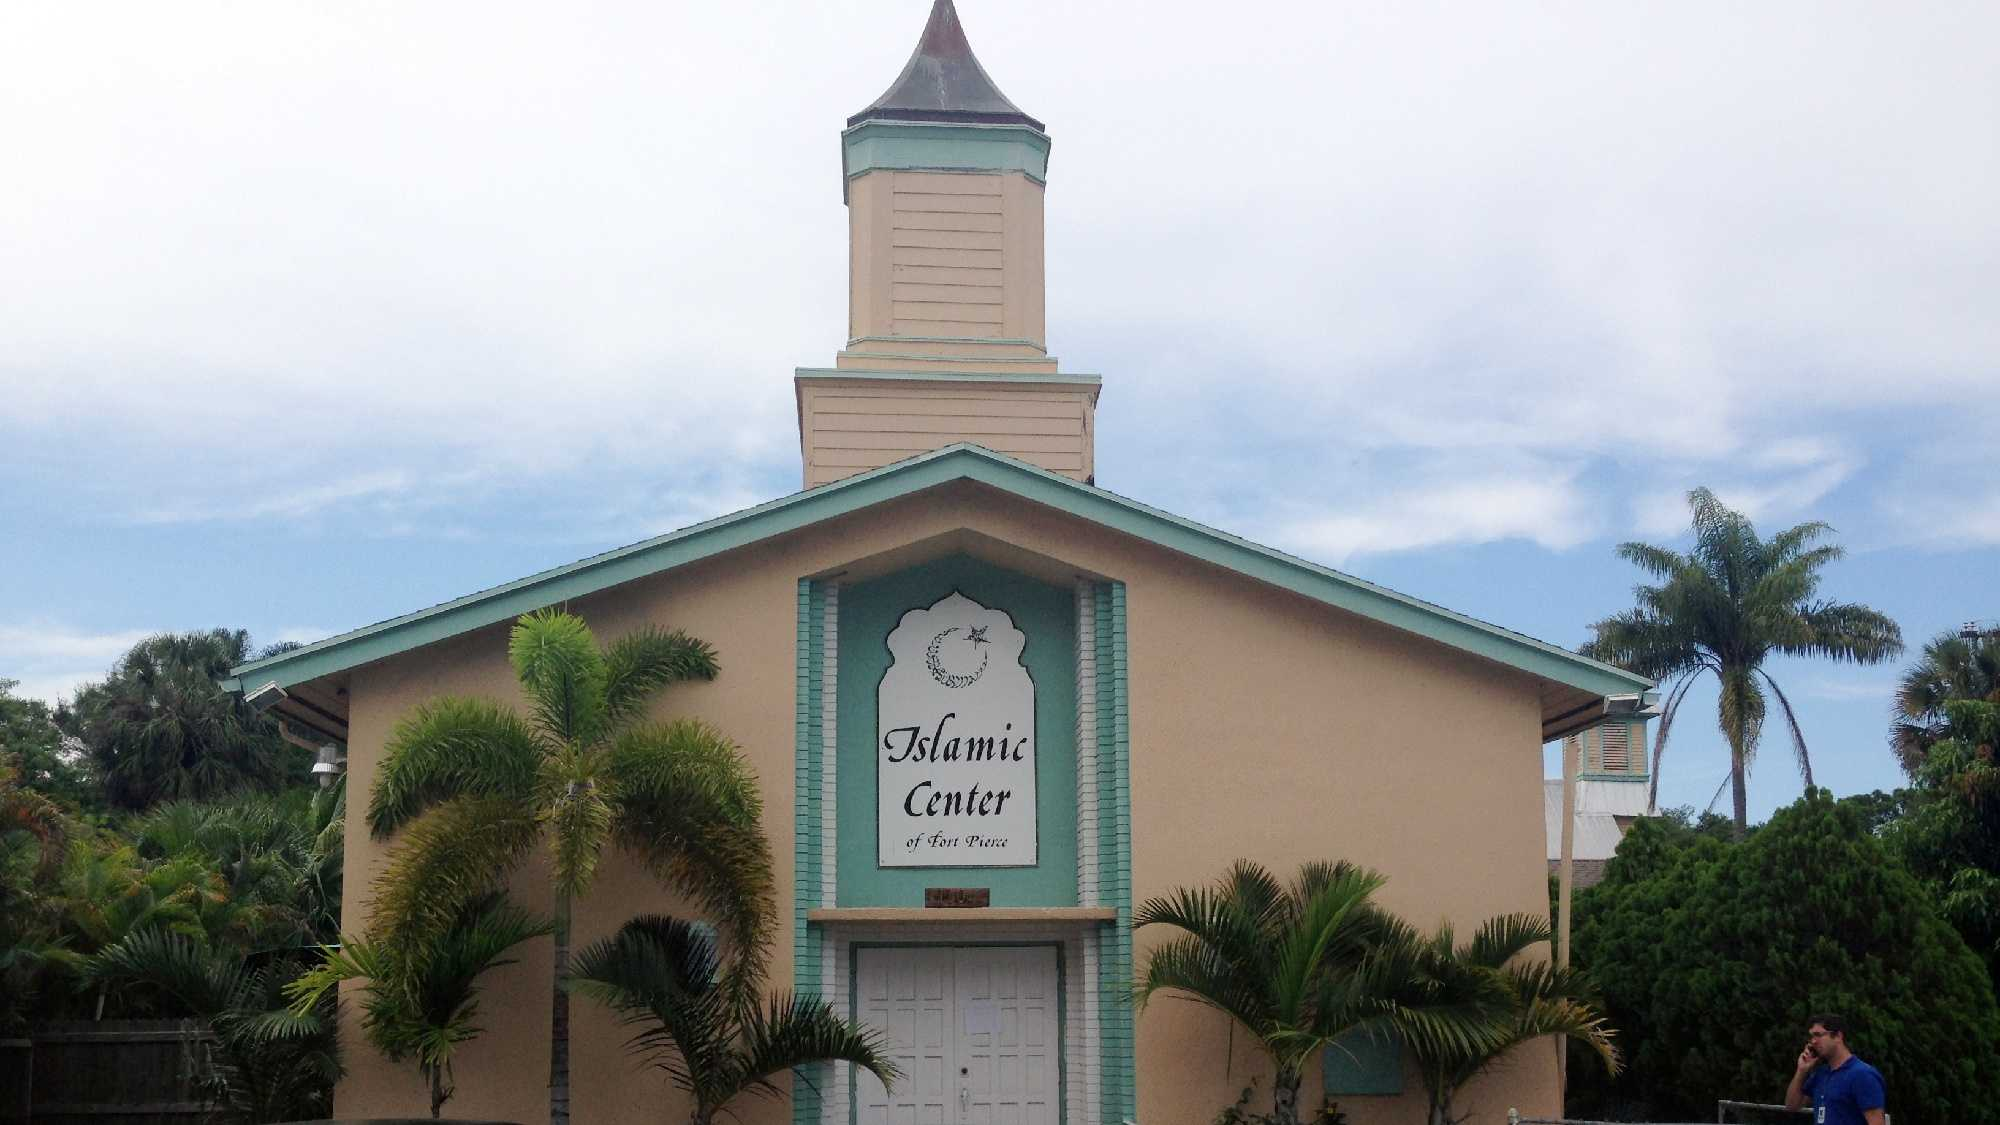 The Islamic Center of Fort Pierce, Fla., is seen in Fort Pierce, Fla., Sunday, June 12, 2016.